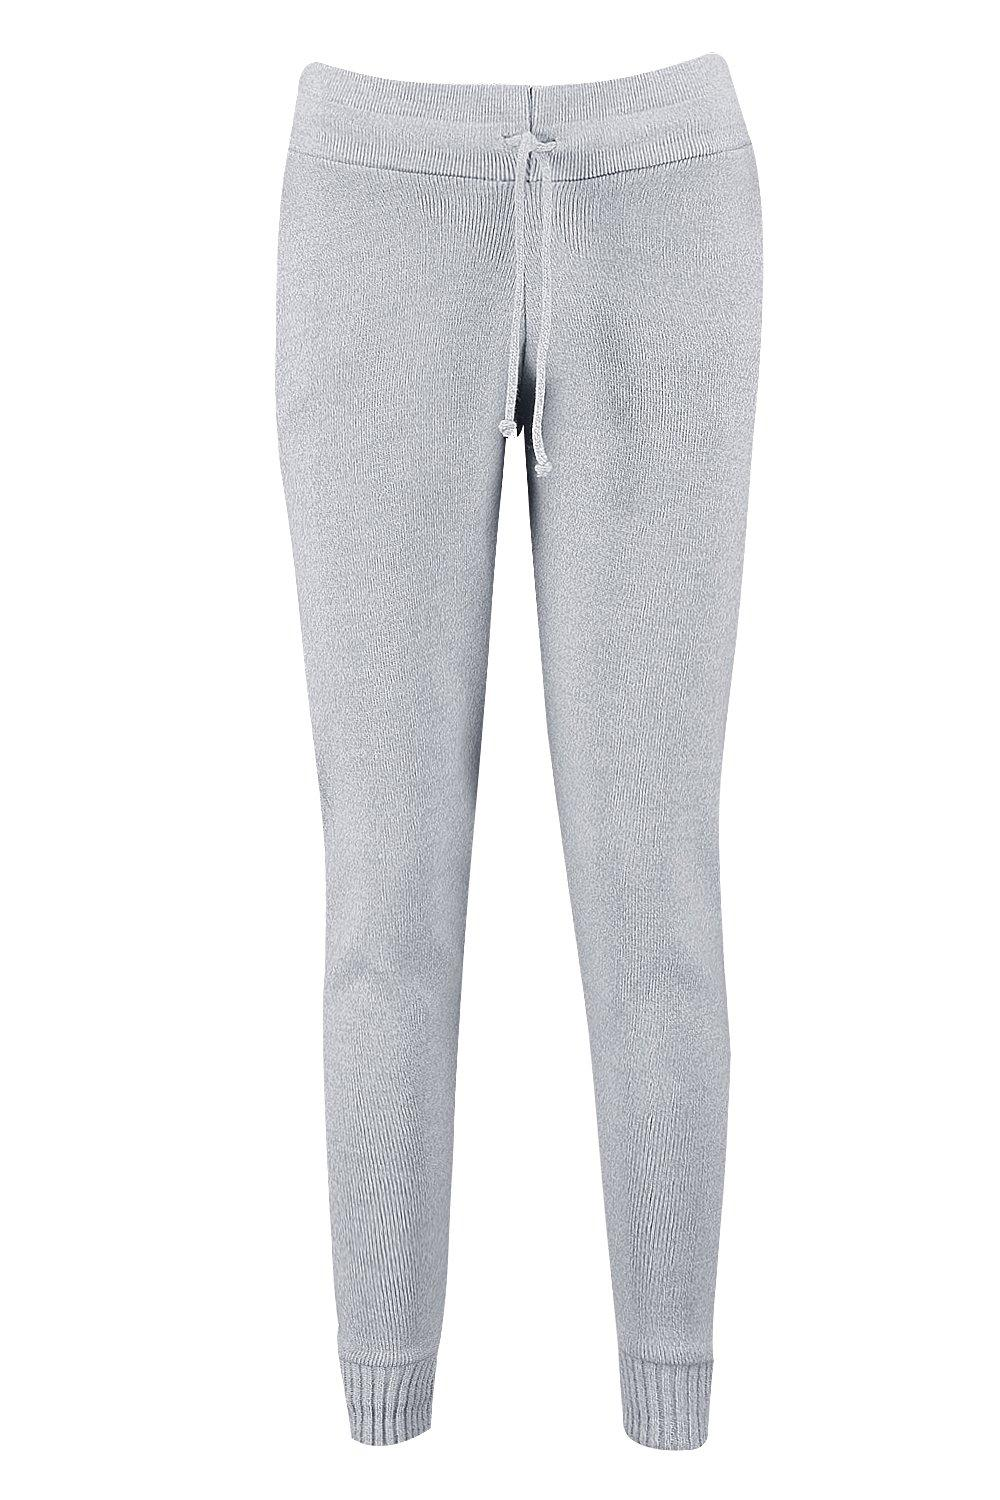 Boutique Boutique Heavy Jogger Knitted Lounge Heavy wPw0xq8g